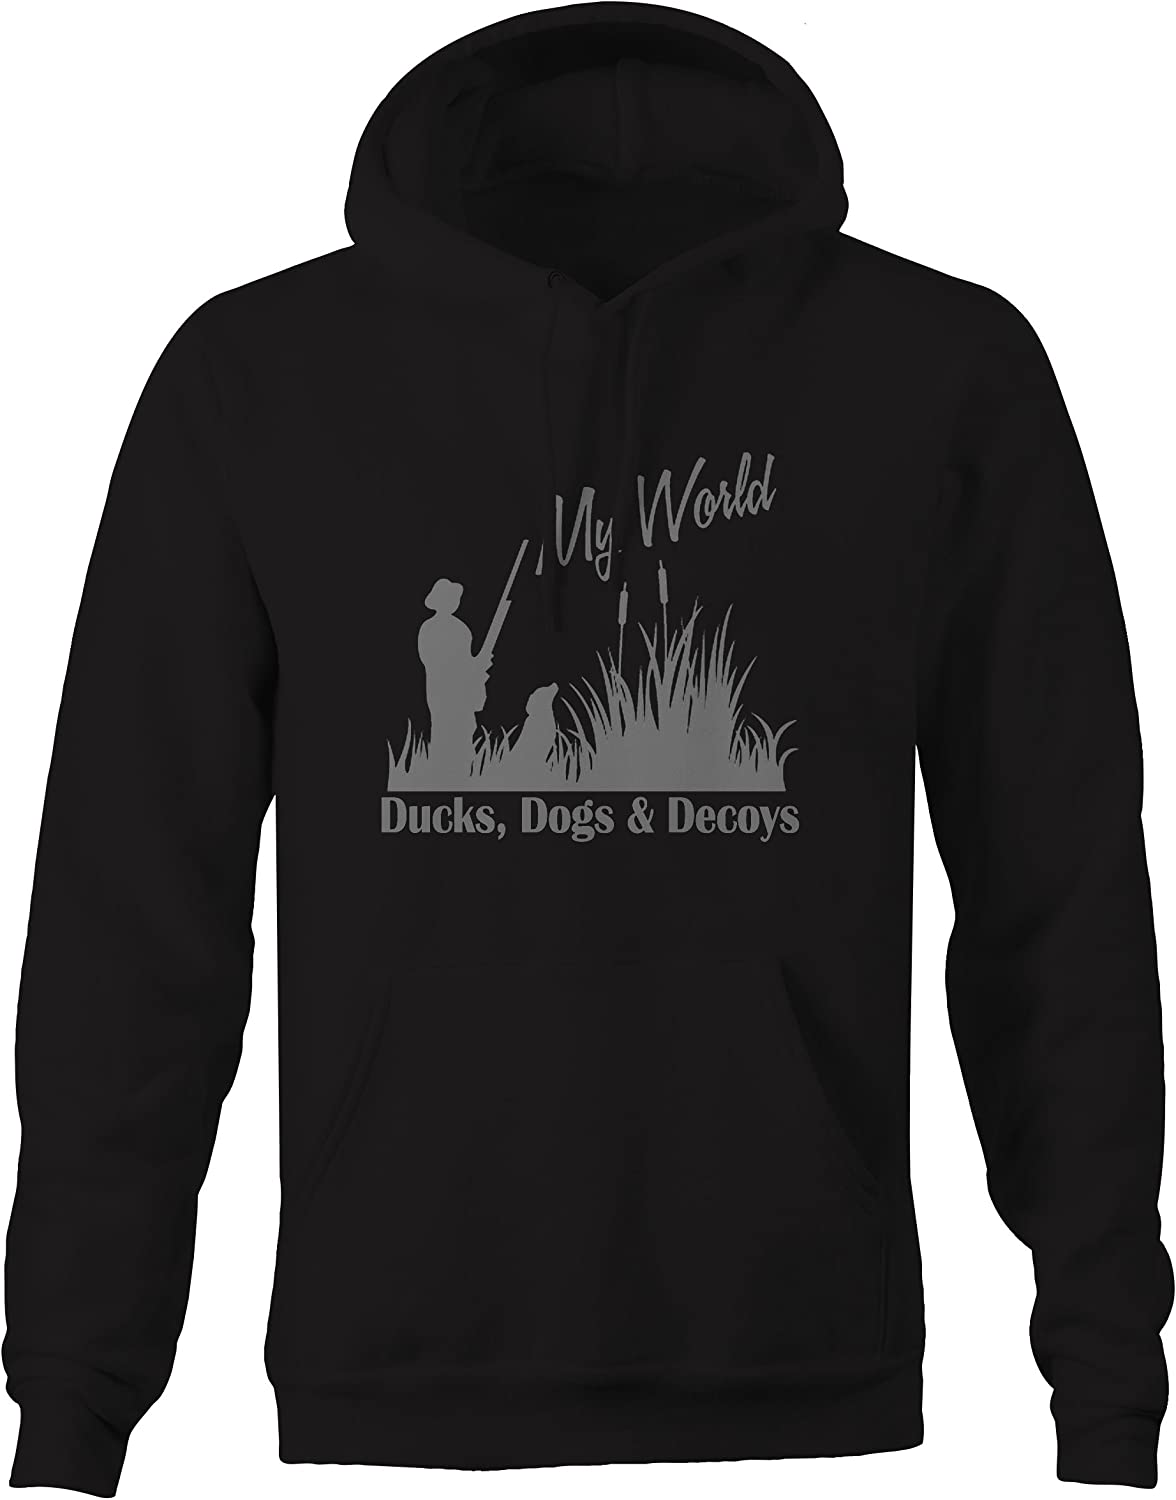 Stealth  s Dogs Decoys  My World  Waterfowl Hunting sweatshirt  Large